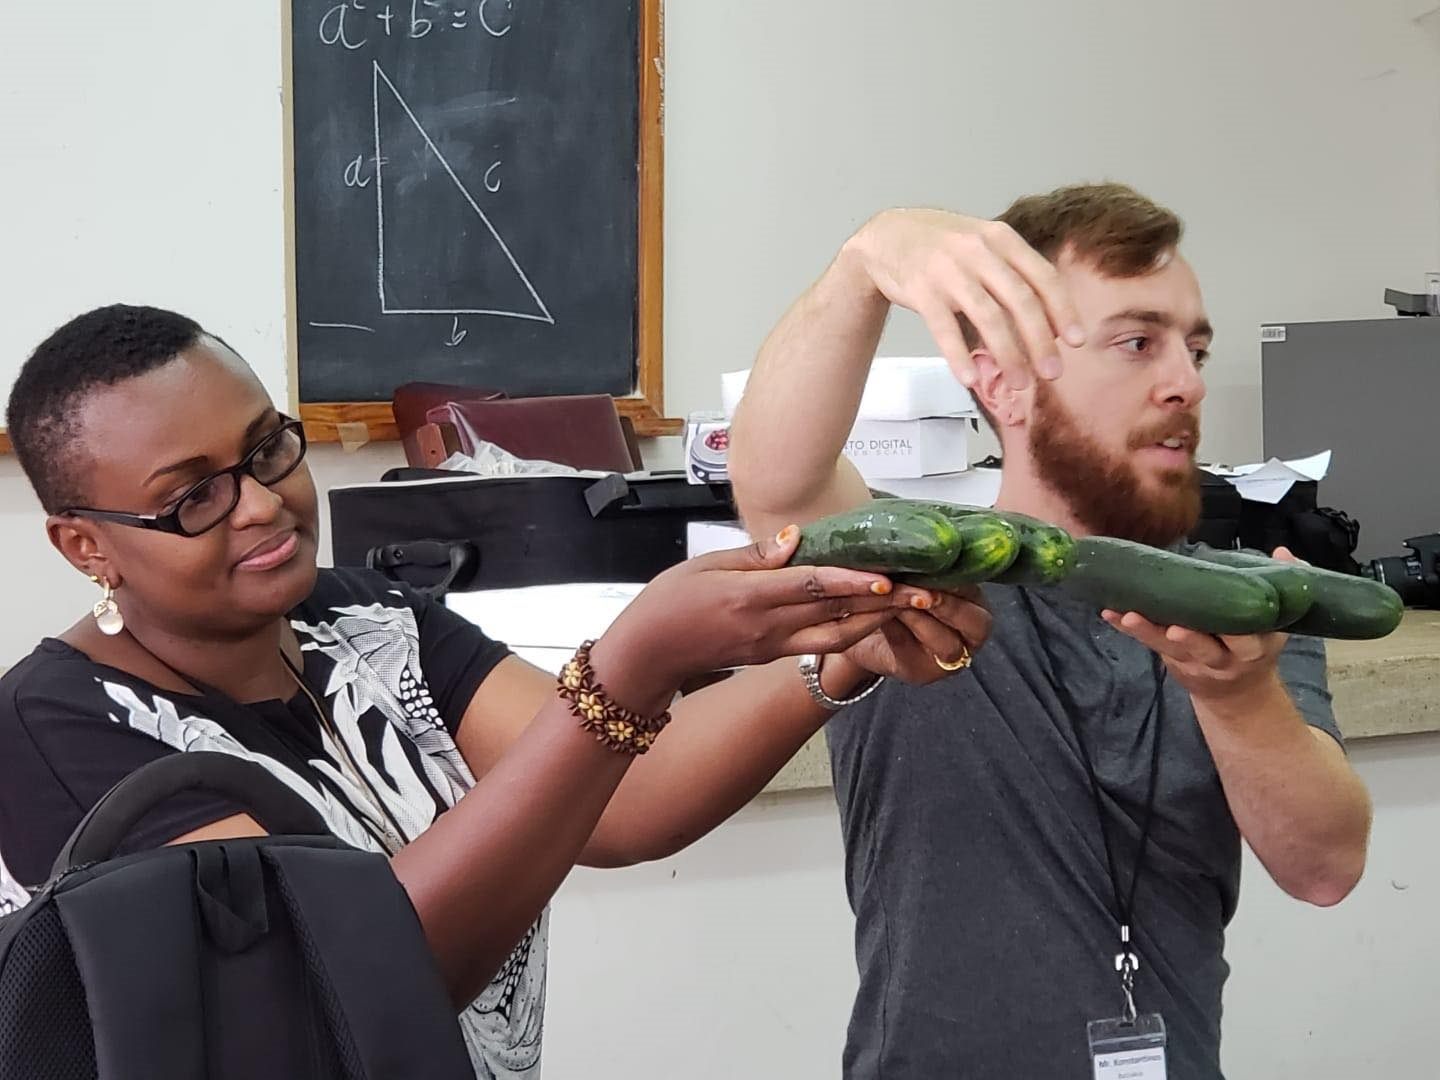 Batziakas teaches students about how to prolong the shelf life of cucumbers.